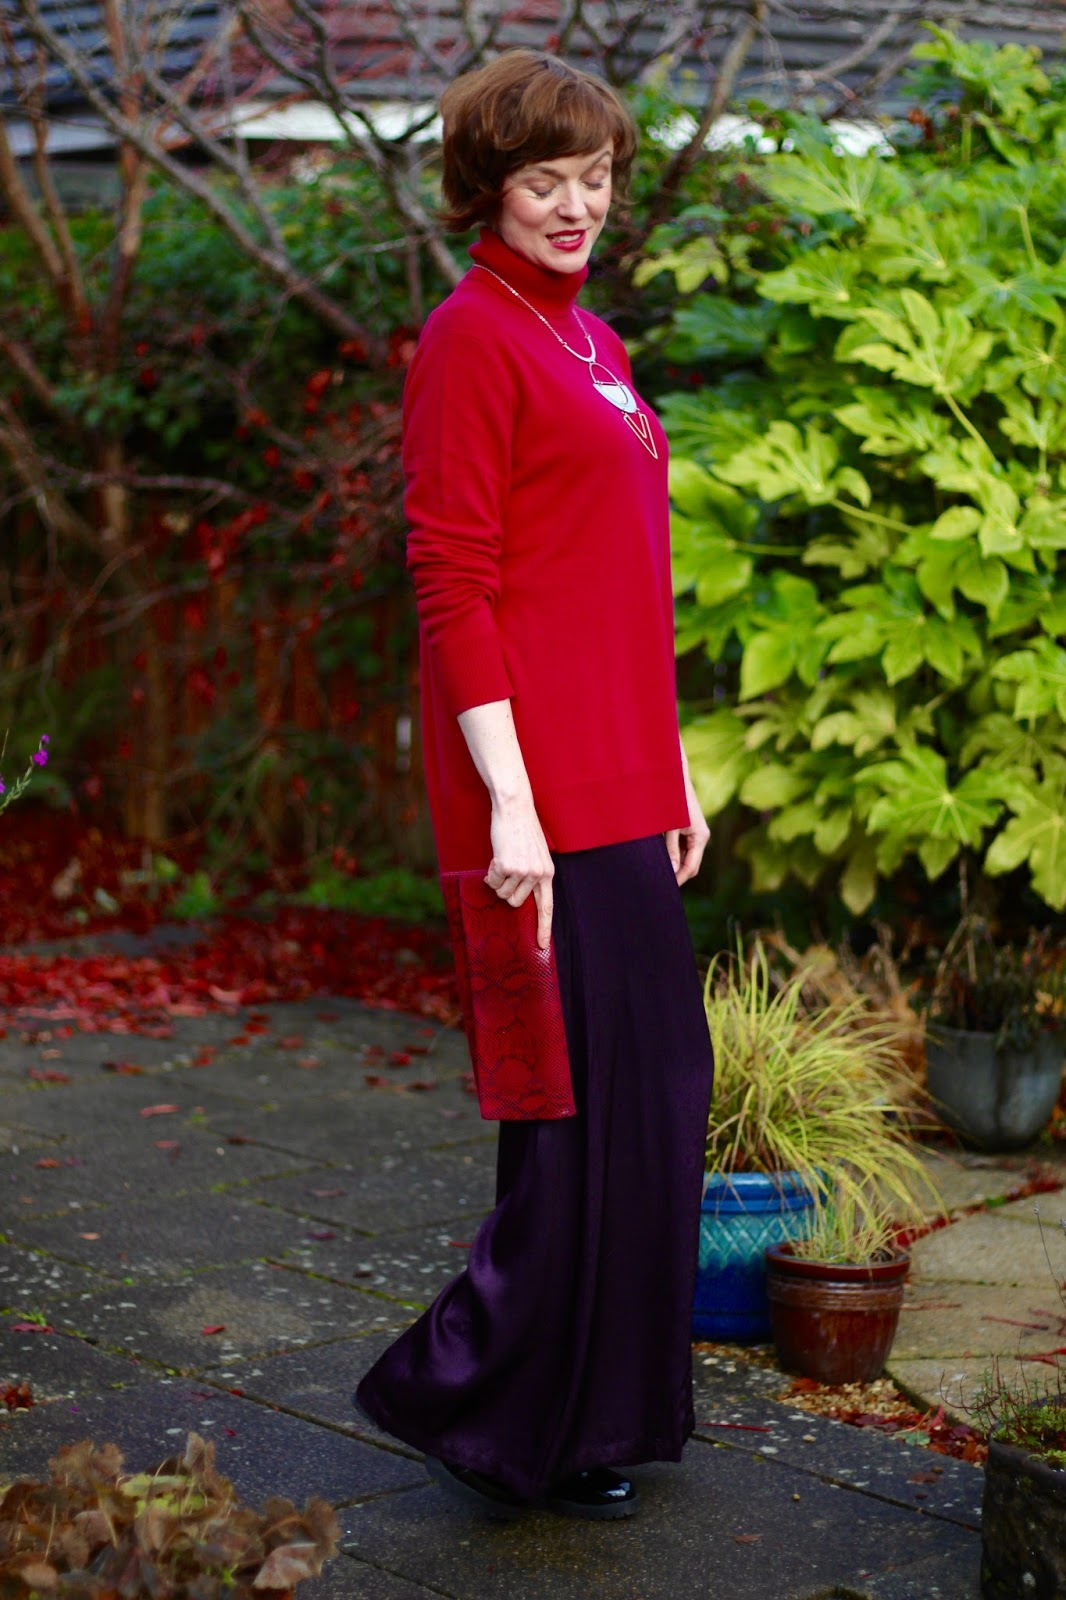 Woolovers Magenta Cashmere Jumper & purple satin trousers, over 40.